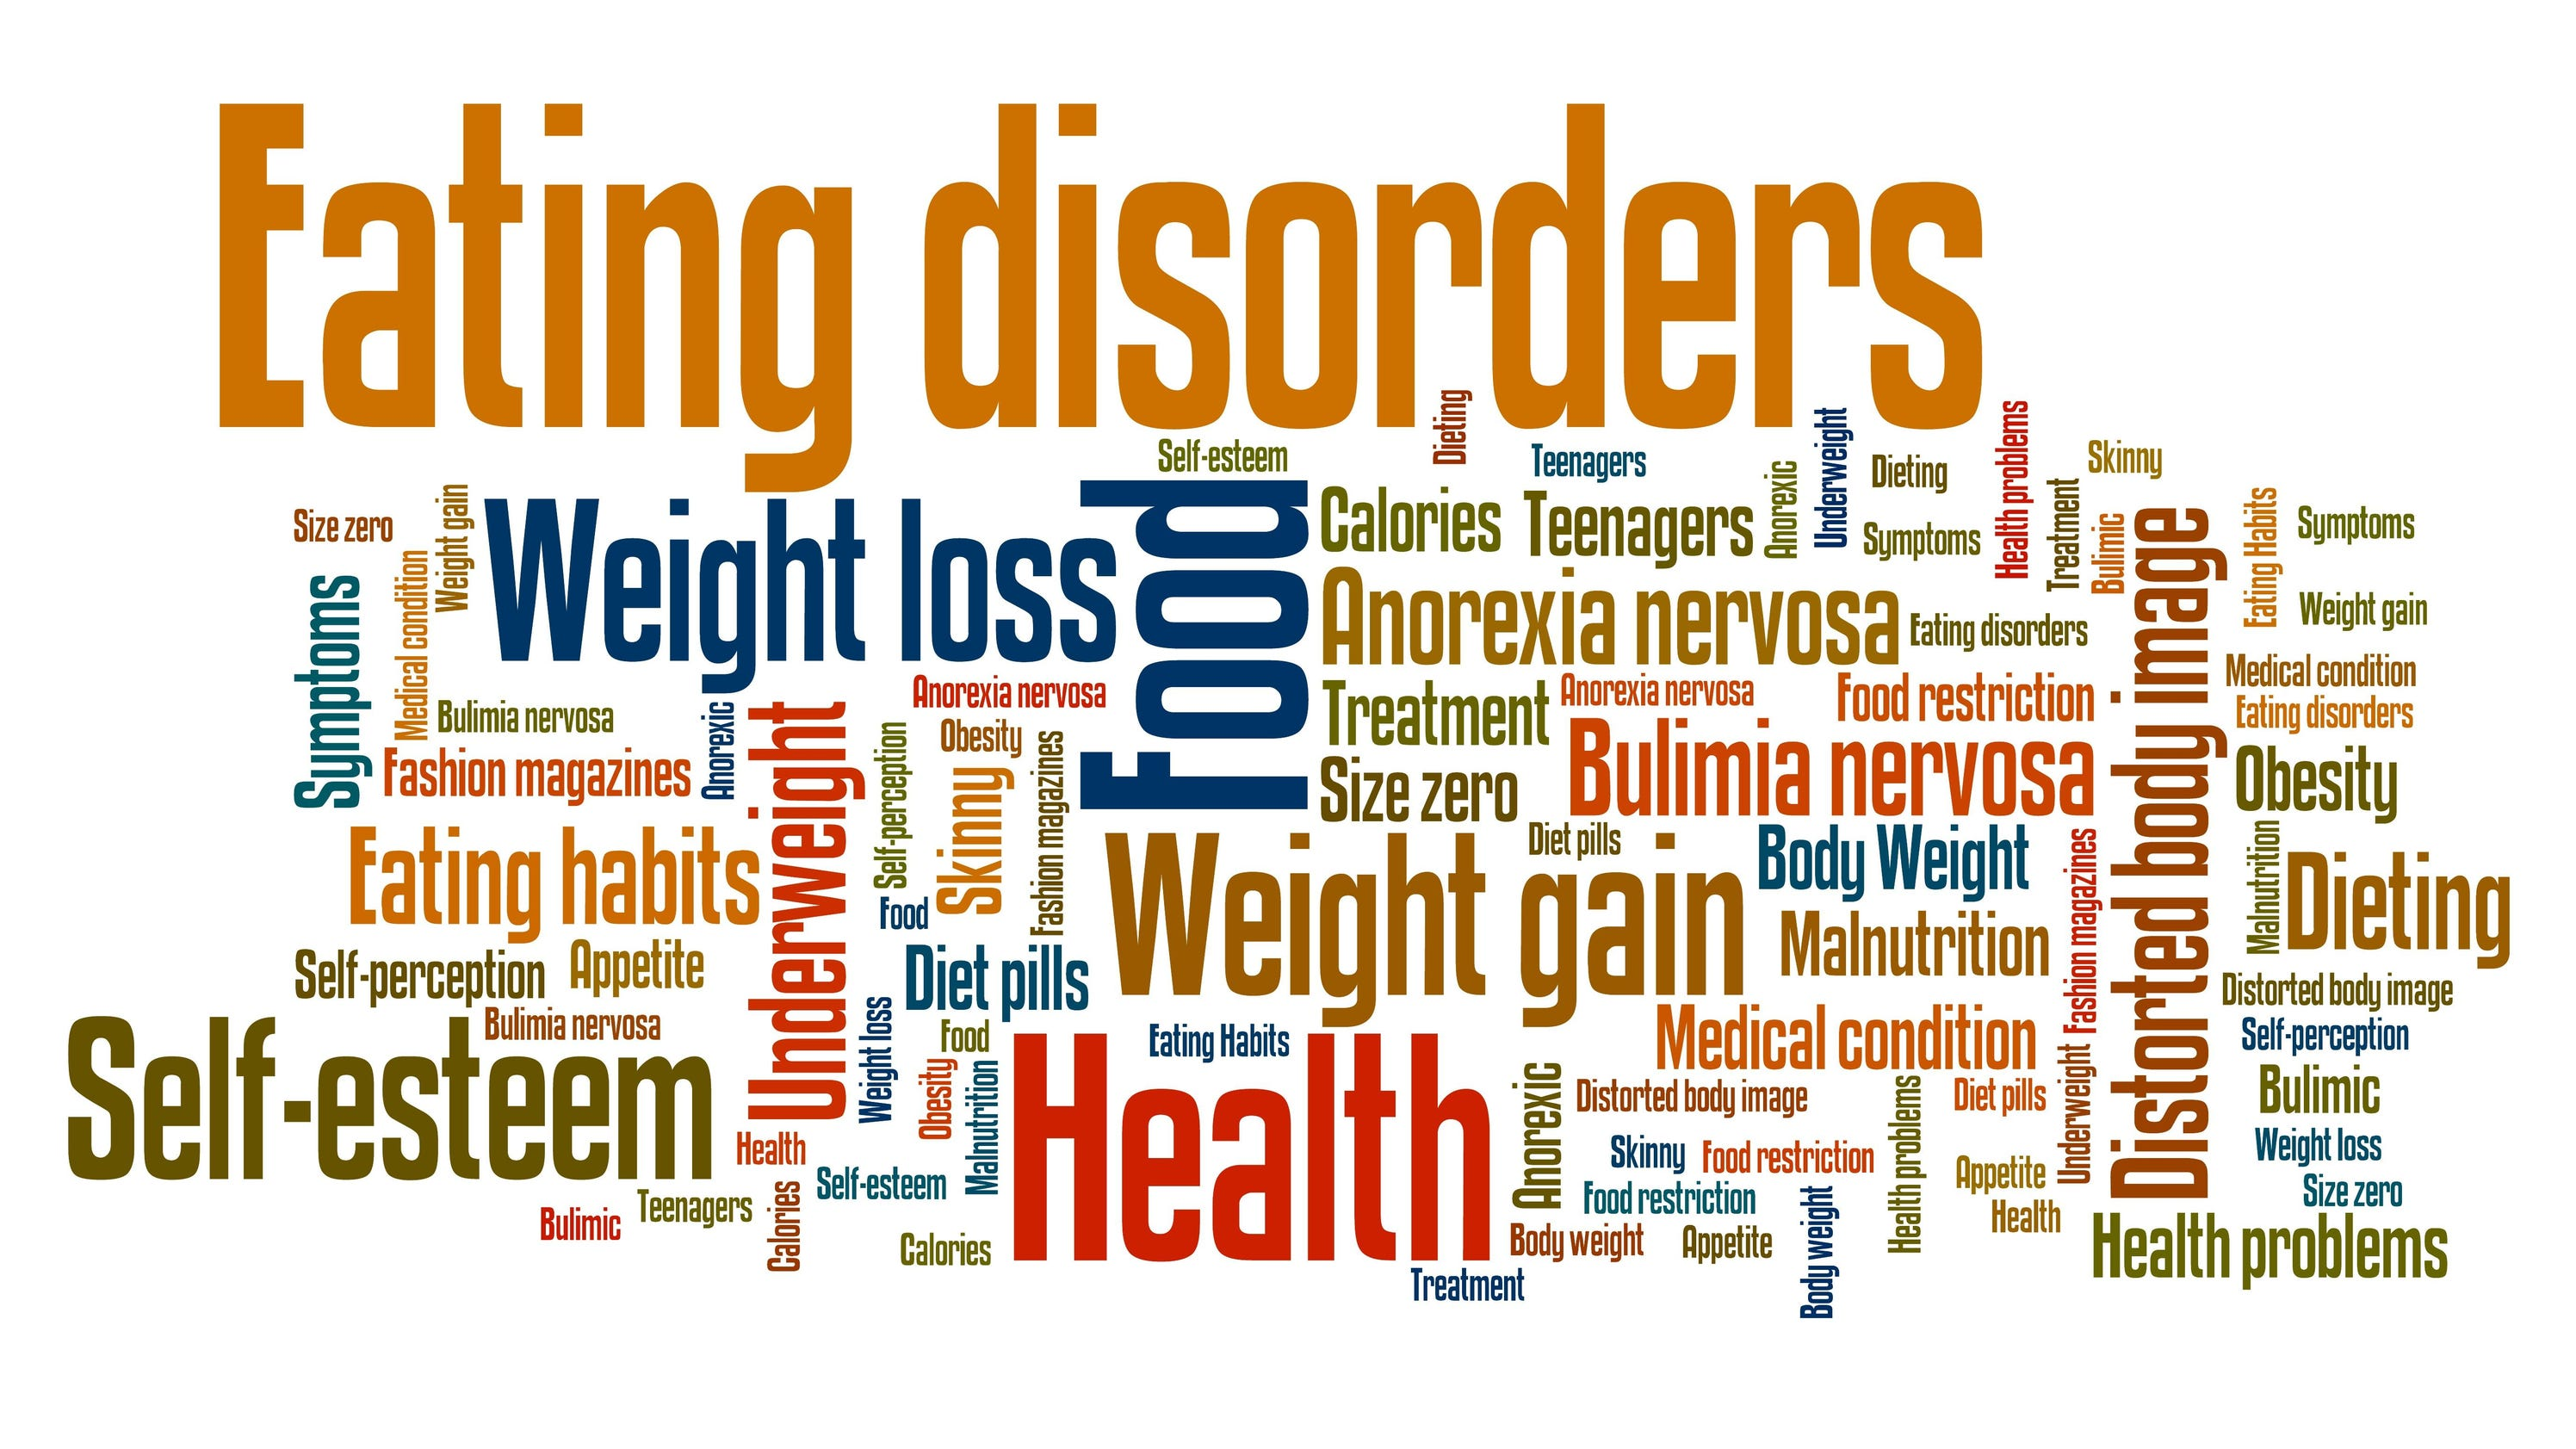 a study on the eating disorder bulimia 2018-6-10  bulimia nervosa is an eating disorder characterized by episodes of binge eating—consuming a lot of food quickly—followed by compensatory behavior, most commonly vomiting or purging.